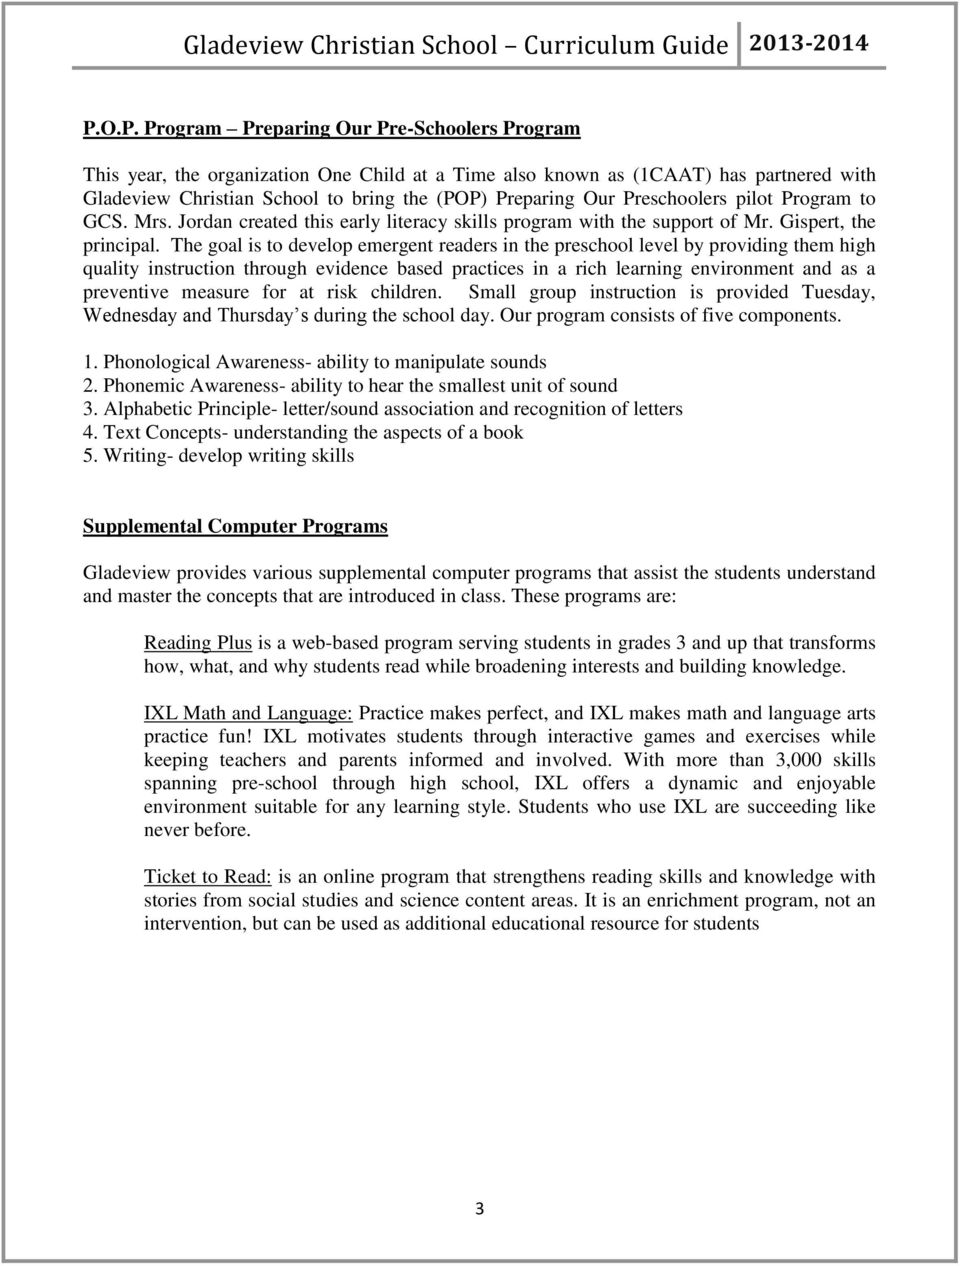 Gladeview Christian School Curriculum Guide - PDF